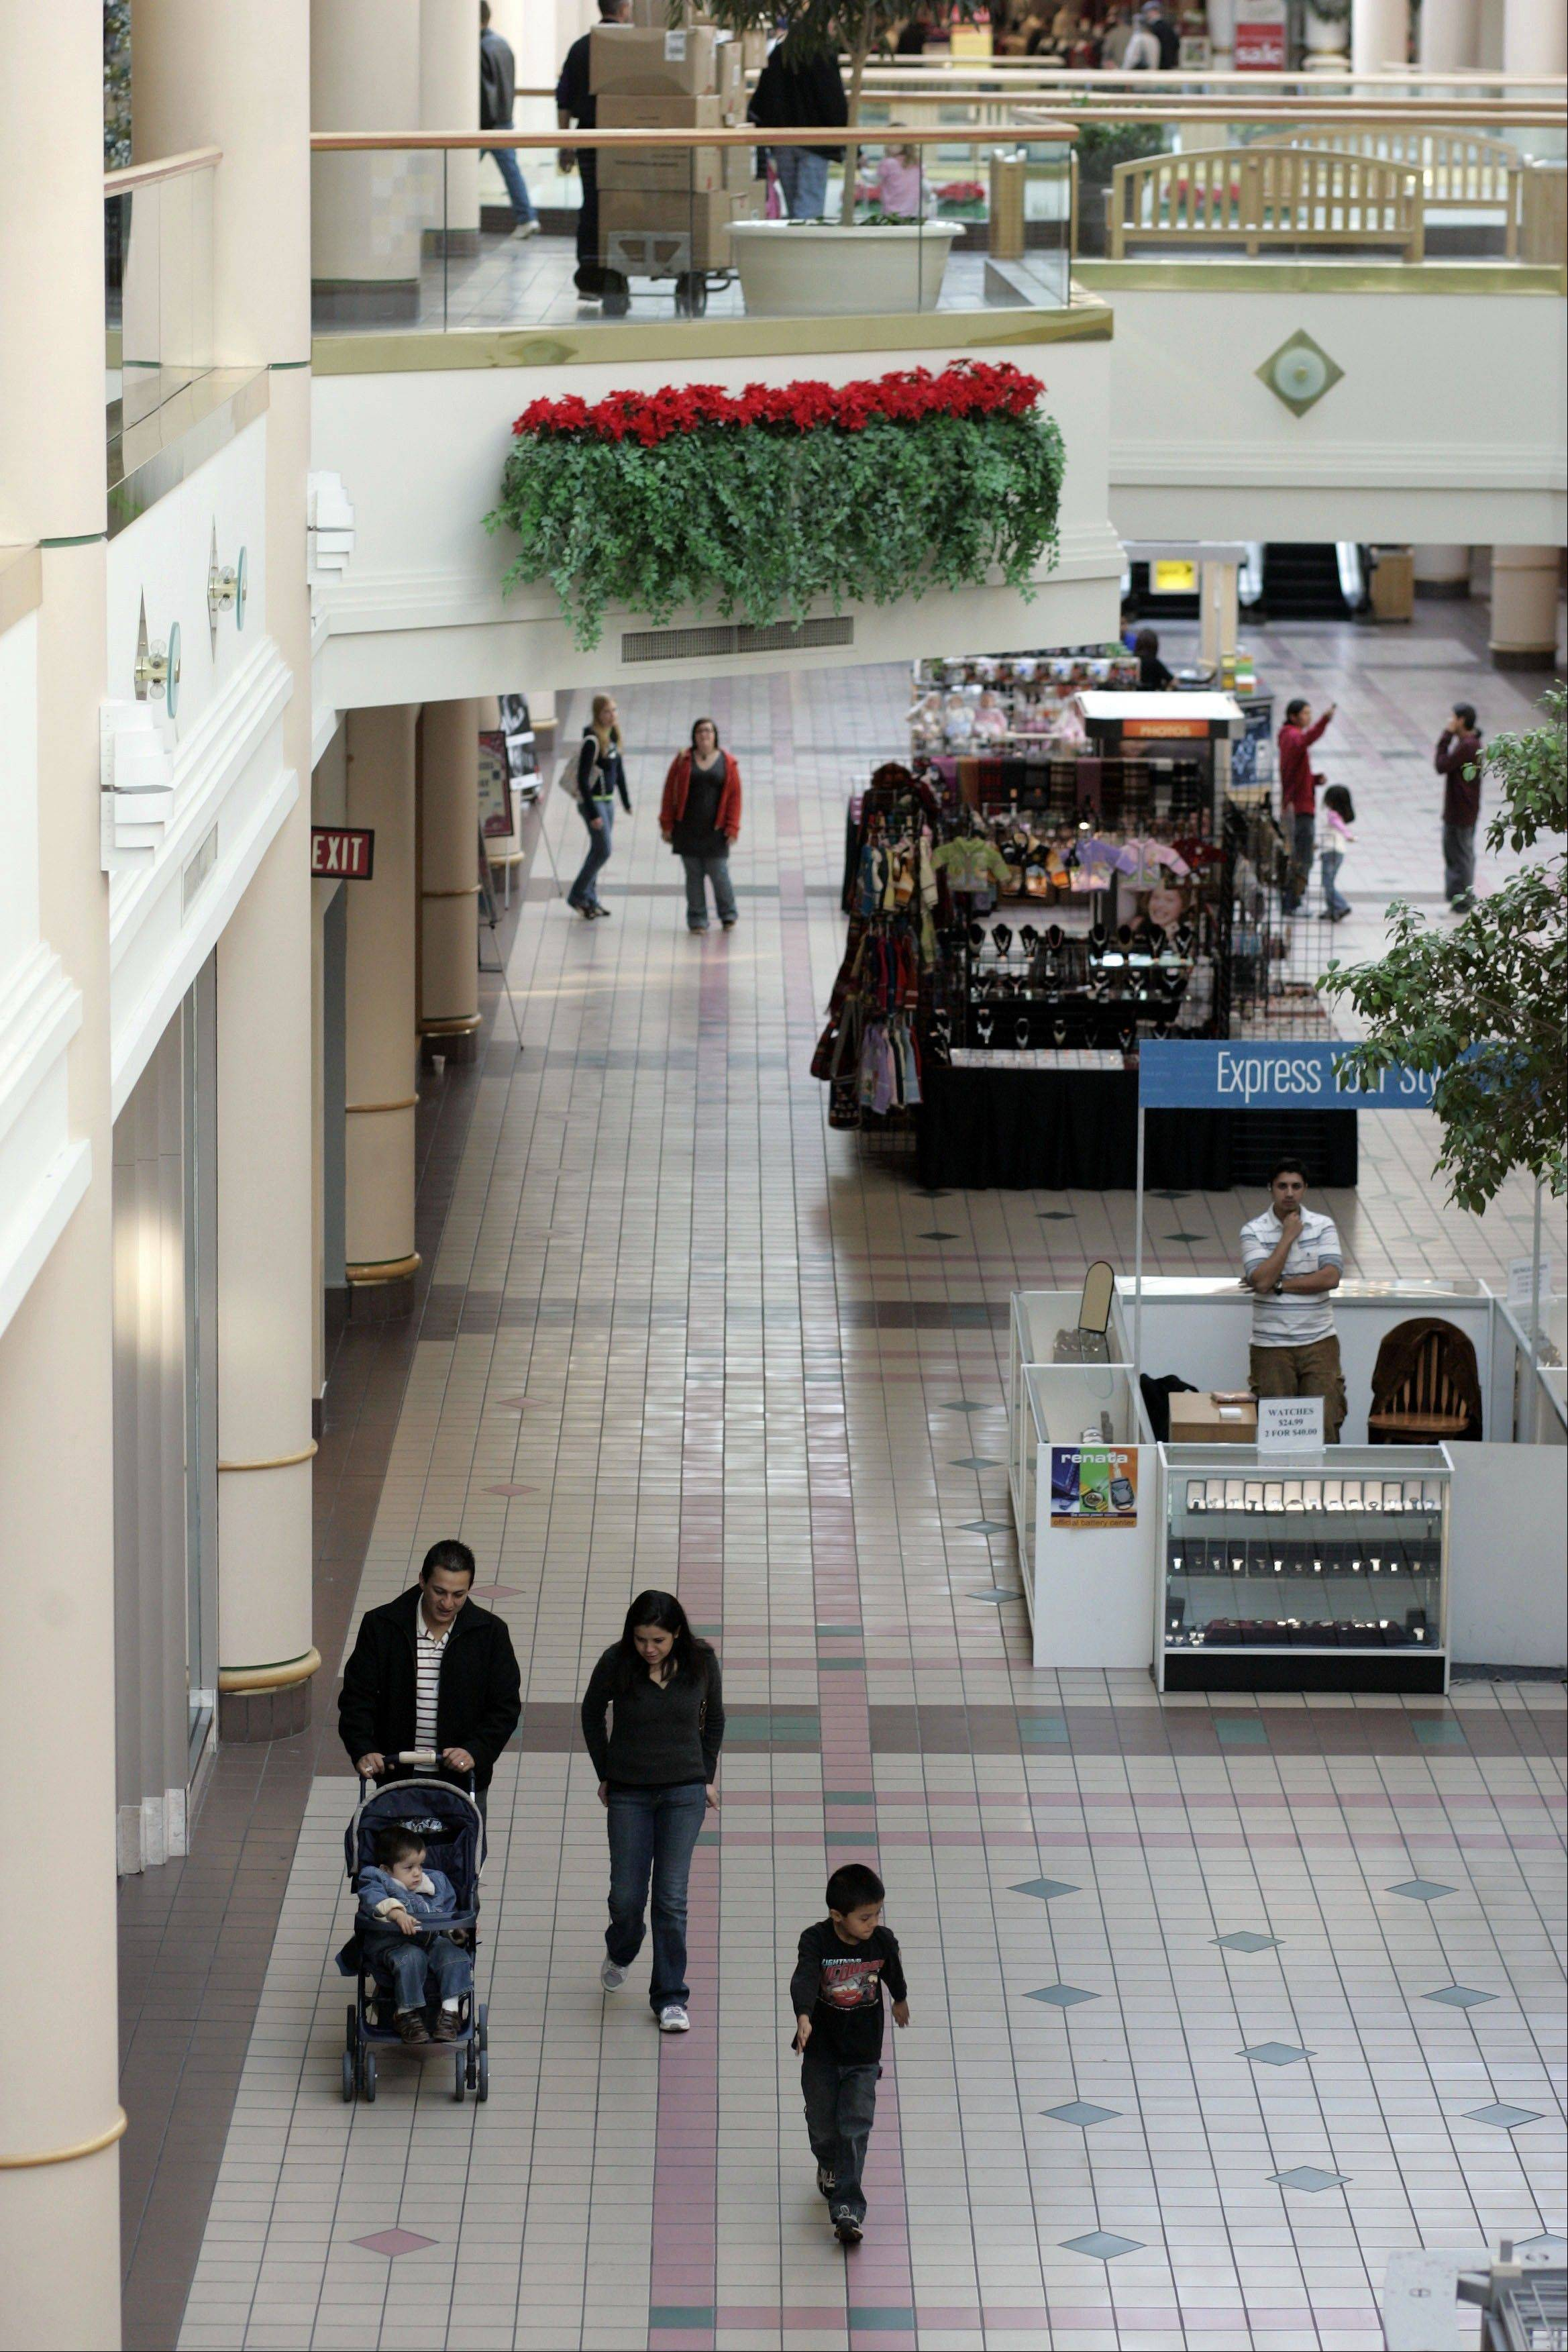 Some readers who responded to a Dave Heun question about change said they'd like to see a more vibrant Charlestowne Mall in St. Charles.